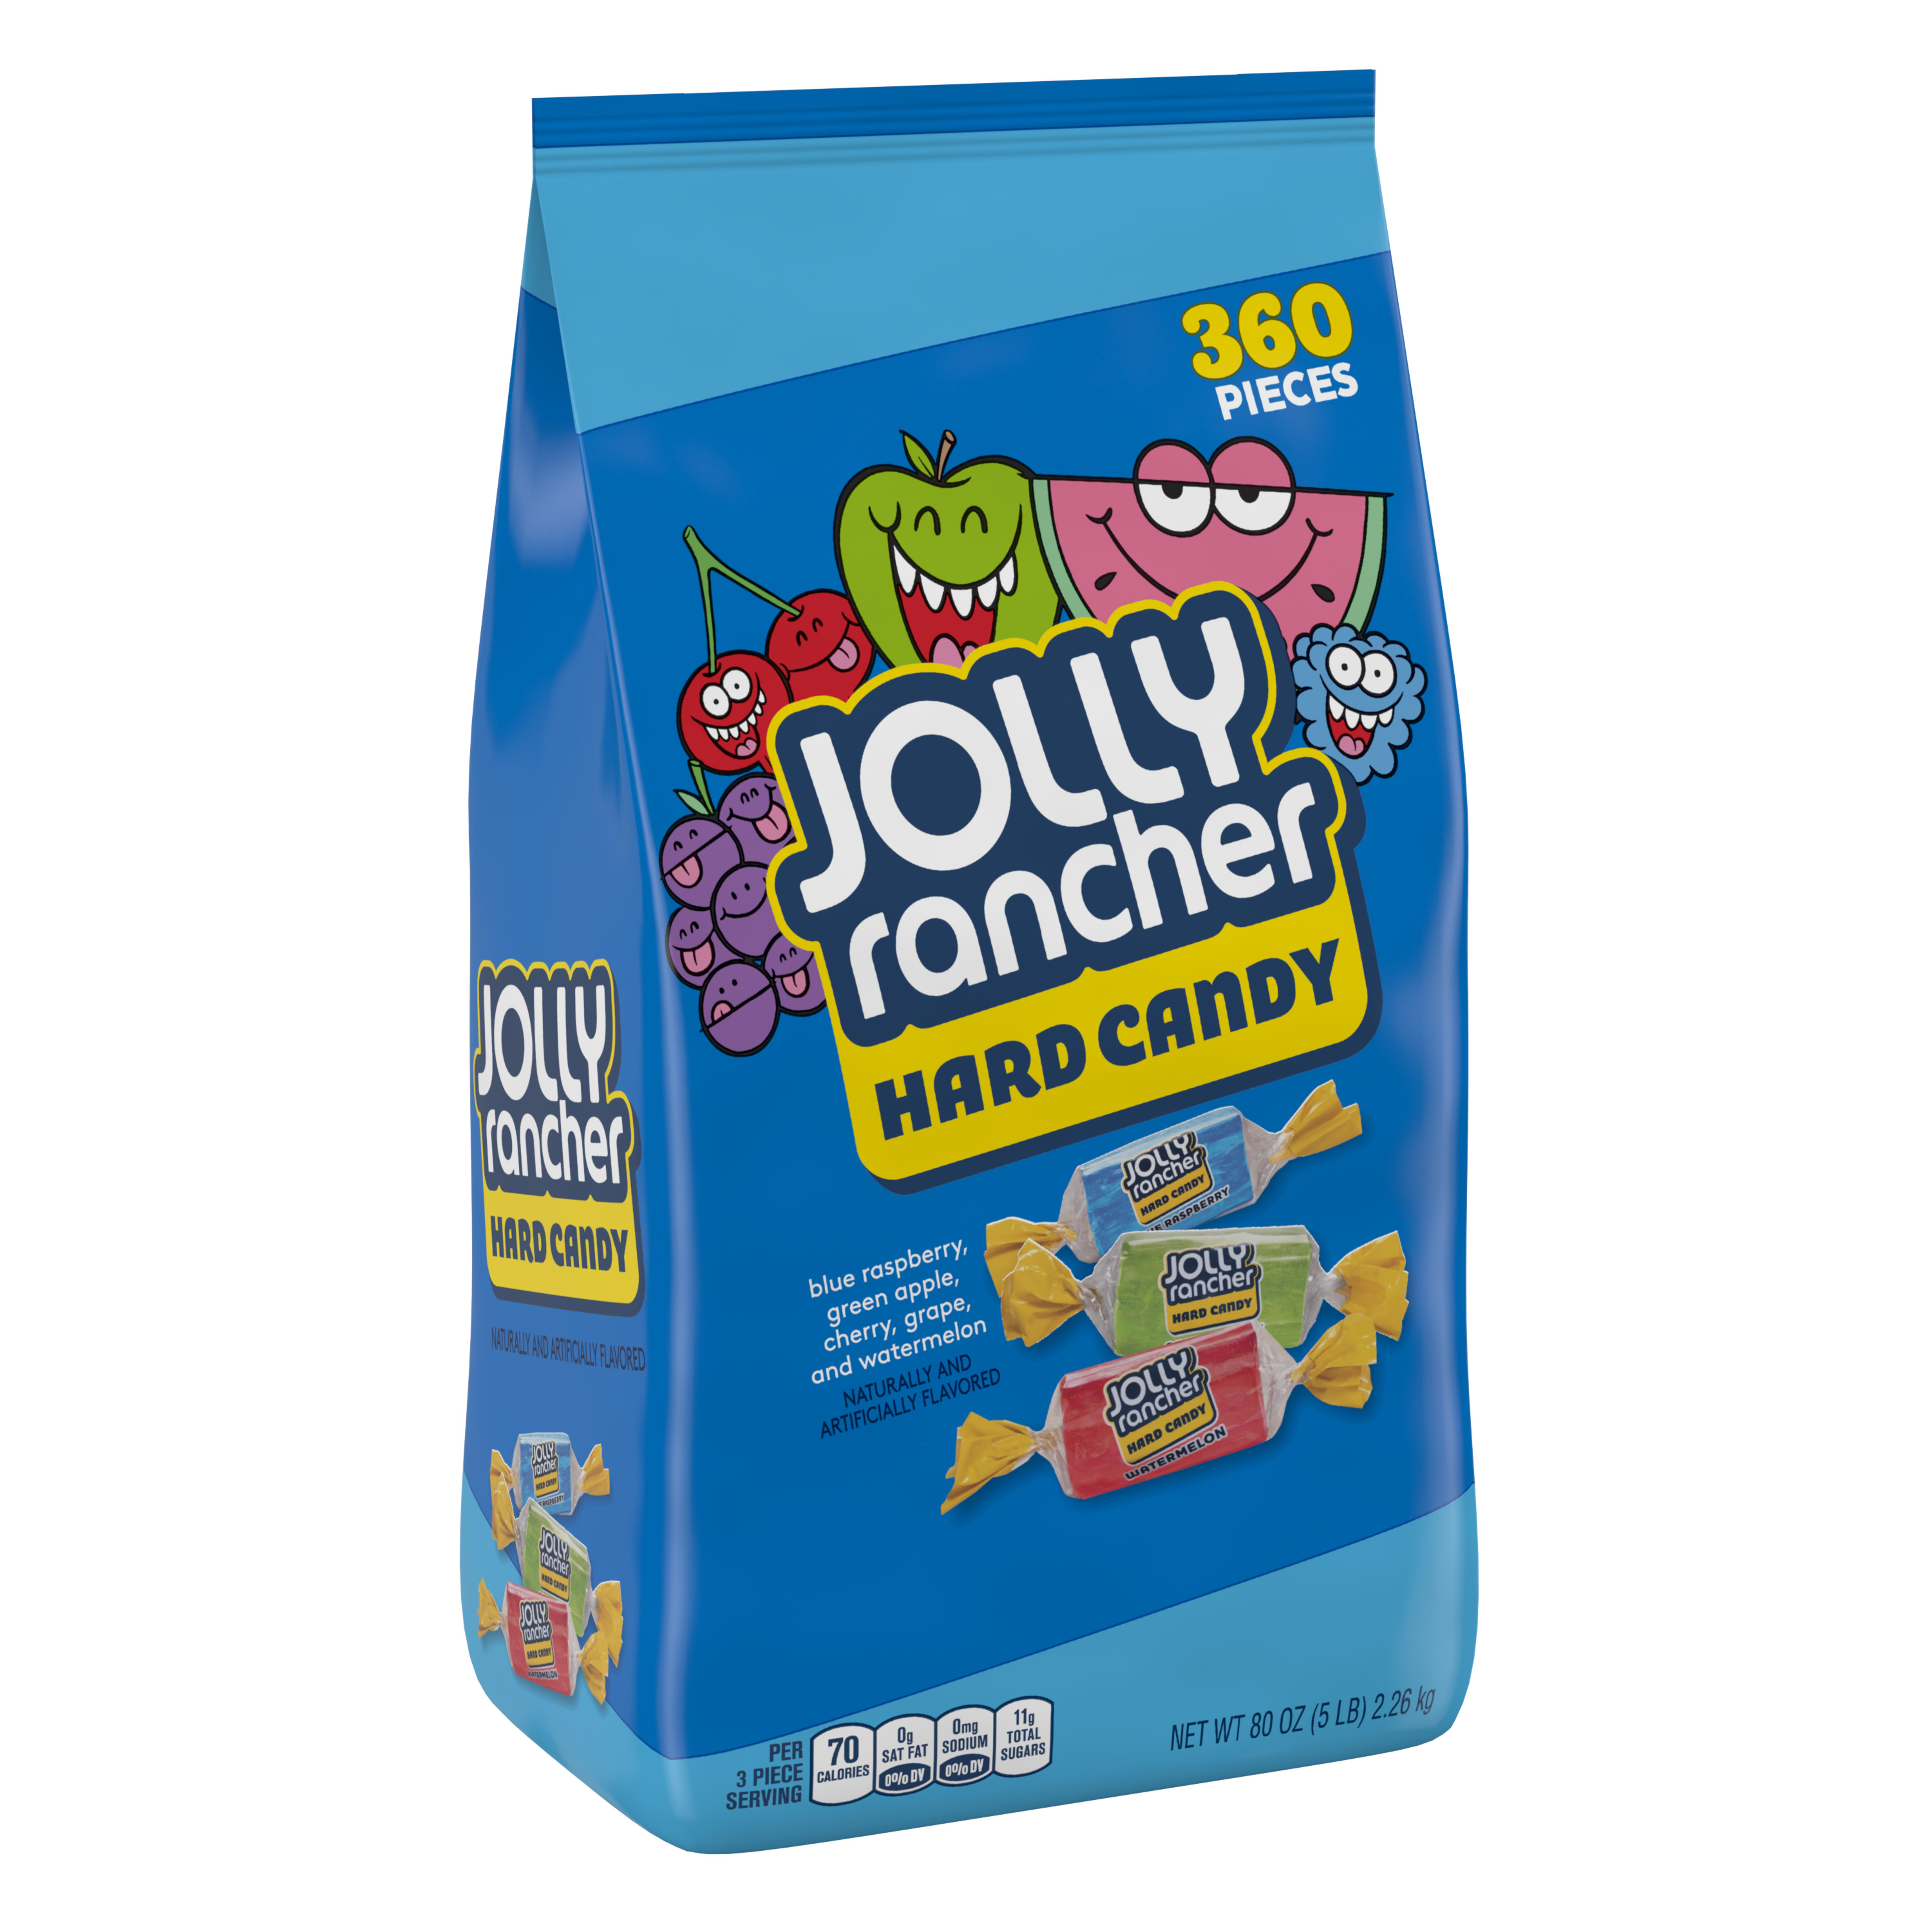 Jolly Rancher, Original Flavors Hard Candy Assortment, 80 Oz